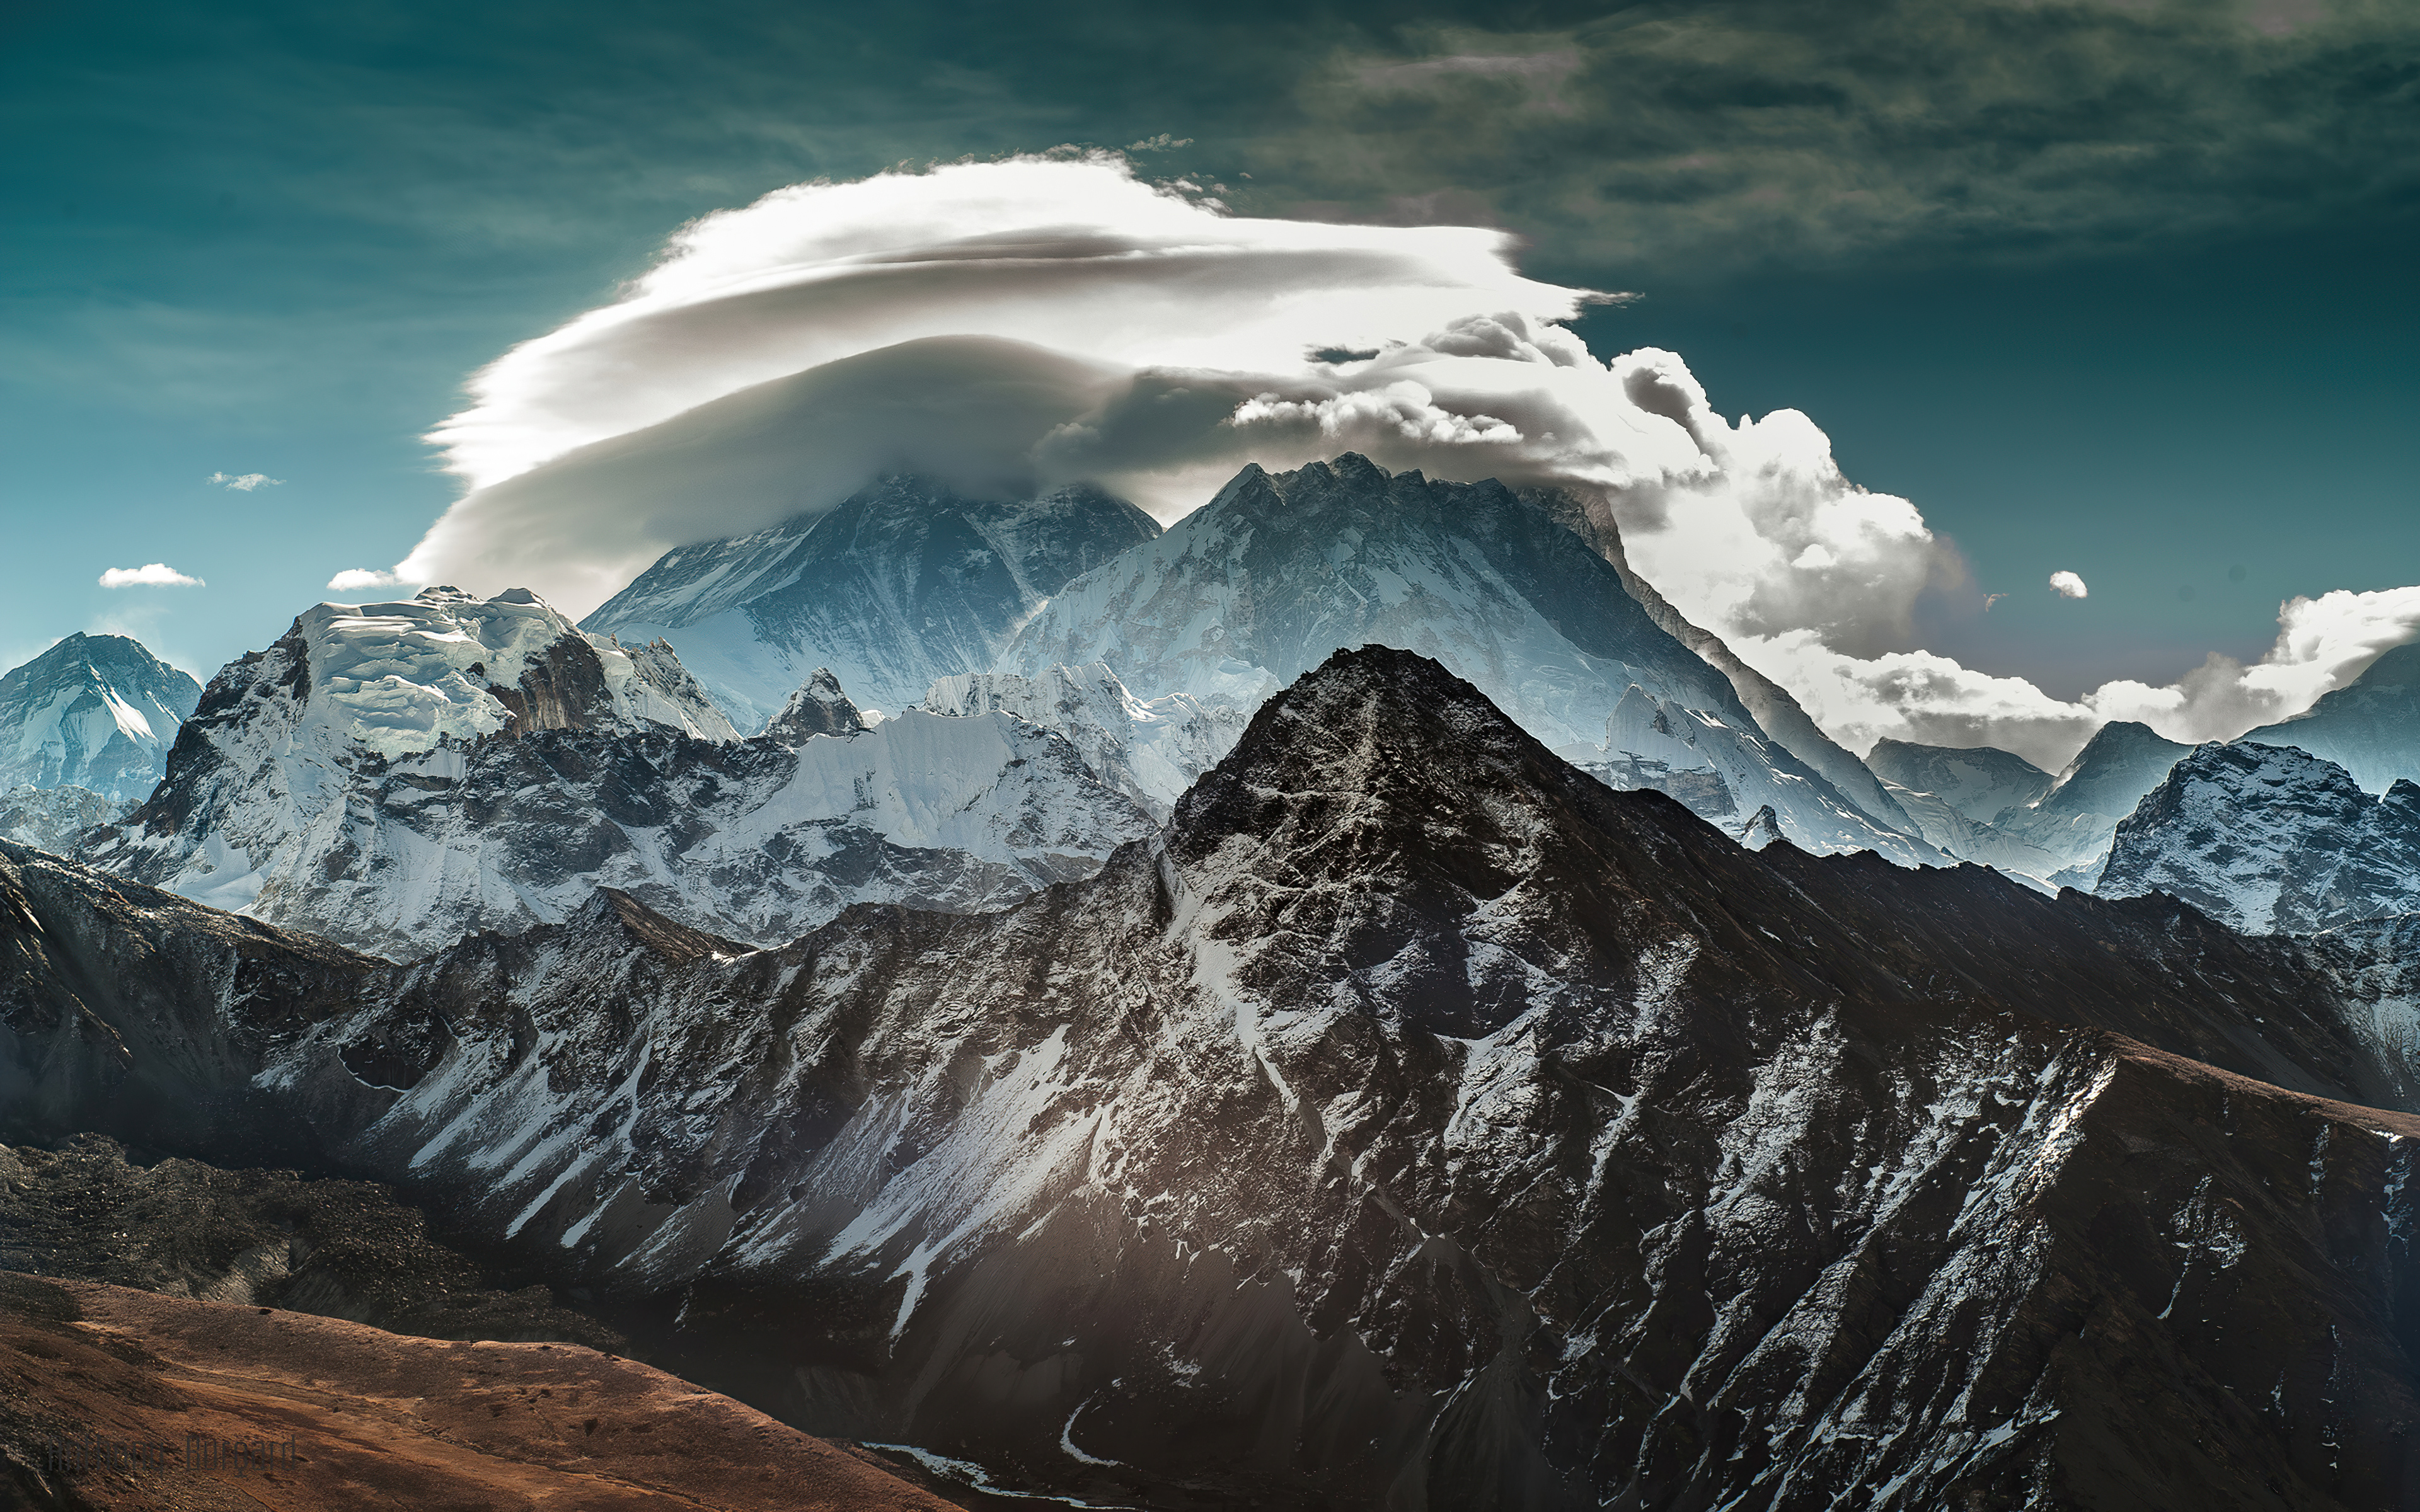 mountains covered in snow clouds 4k 1615197629 - Mountains Covered In Snow Clouds 4k - Mountains Covered In Snow Clouds 4k wallpapers